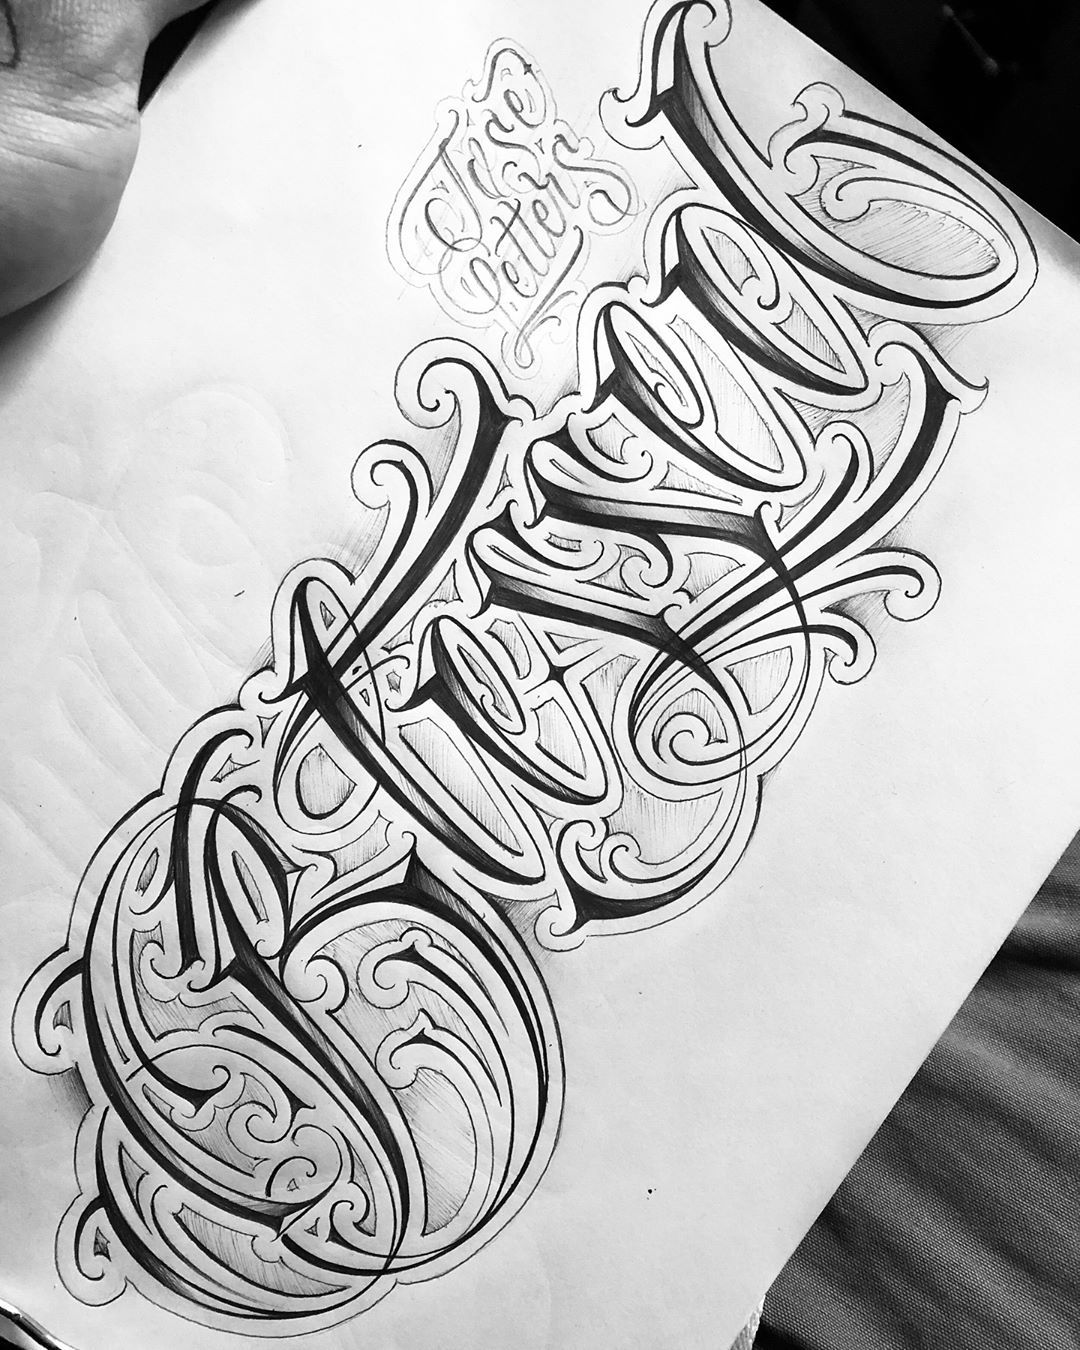 Graffiti Tattoo Lettering Generator: Blessed Diseño Disponible Para La Cdmx !…